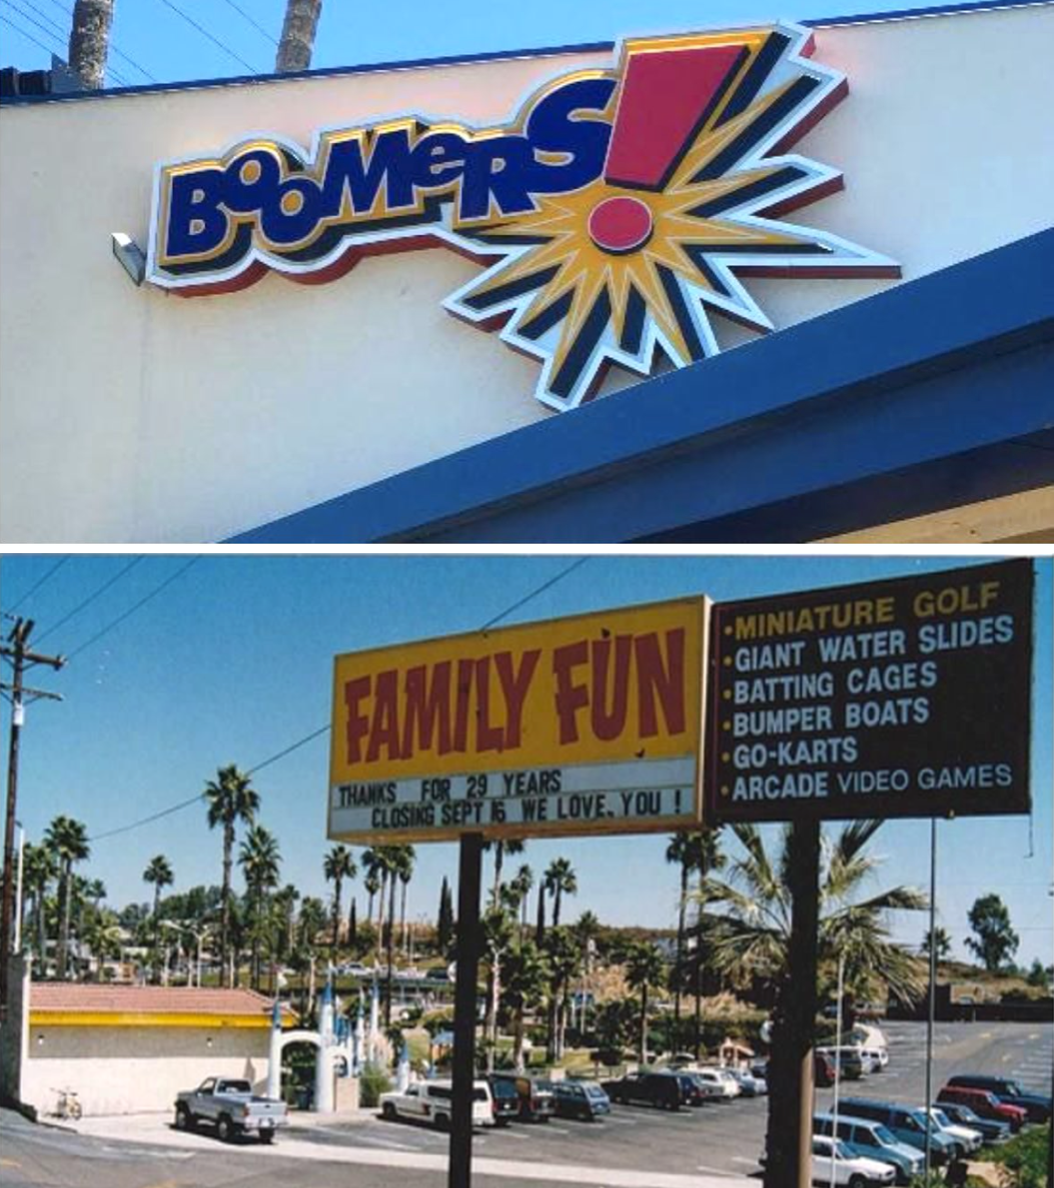 Sandiegoville Boomers To Revive As San Diego Family Fun Center Under Original Ownership